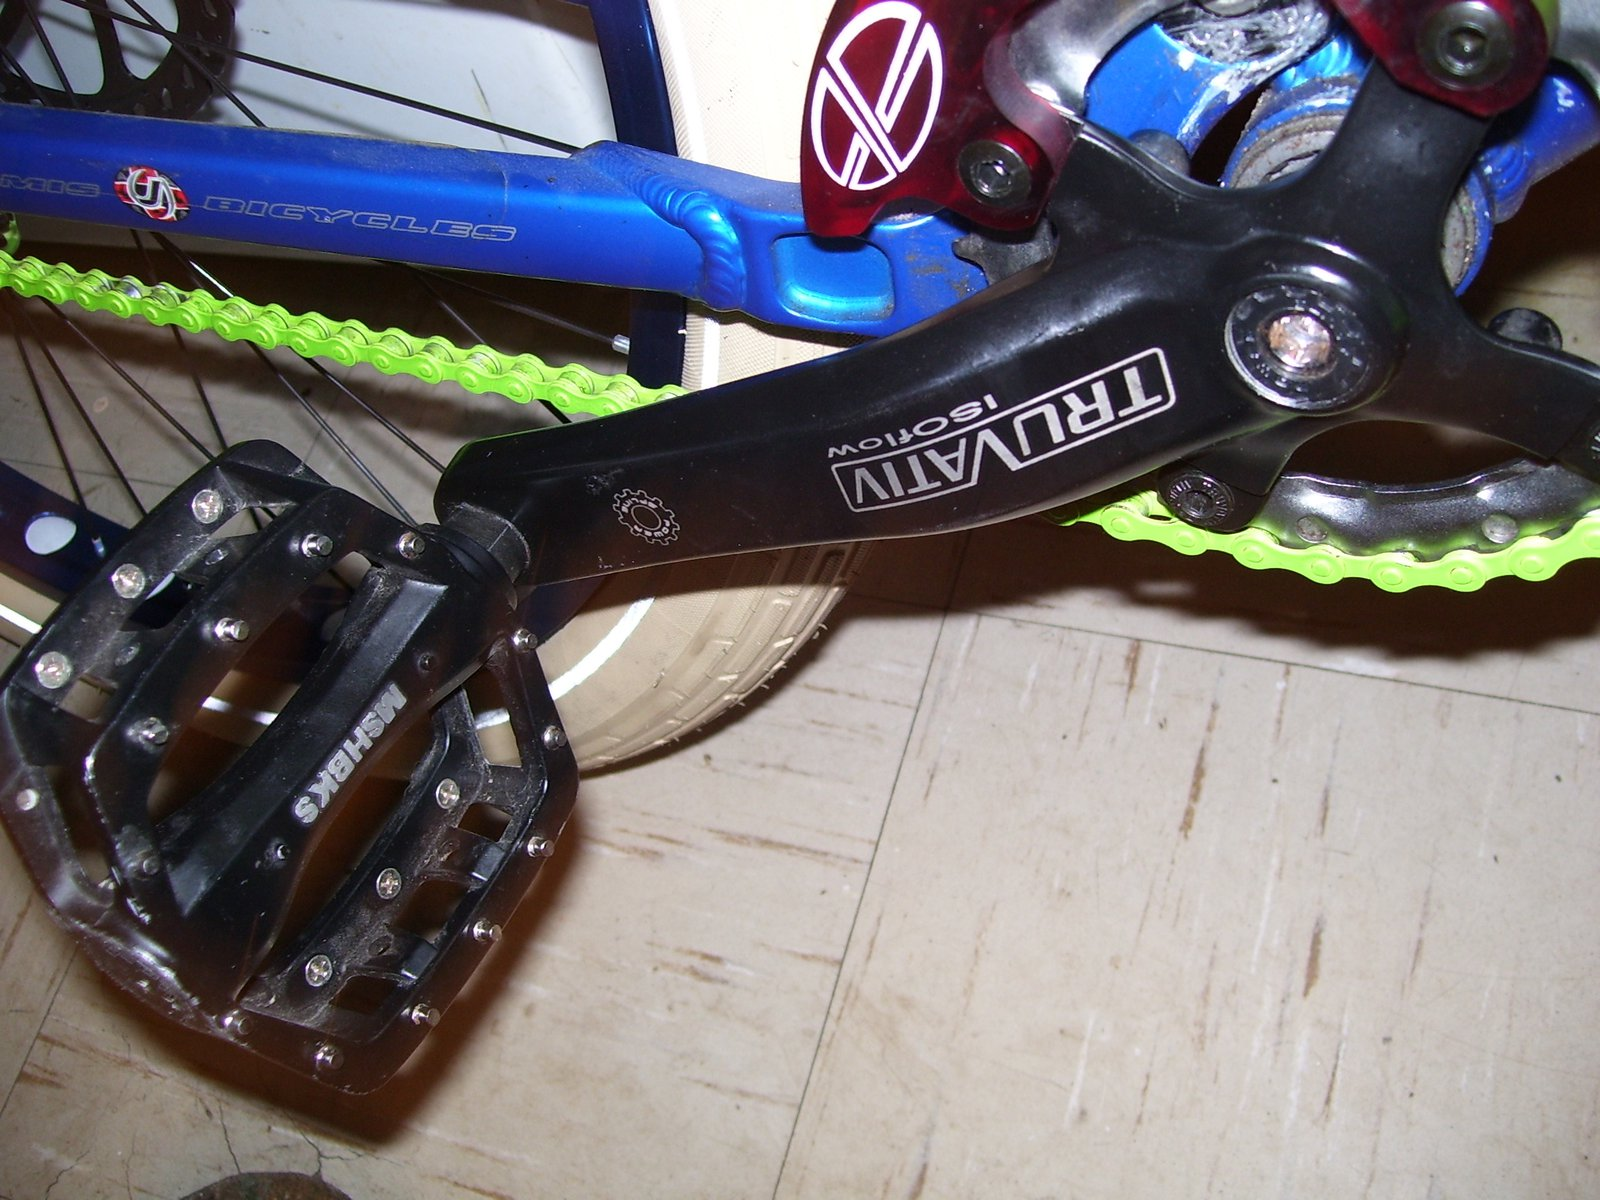 New chain and bash guard